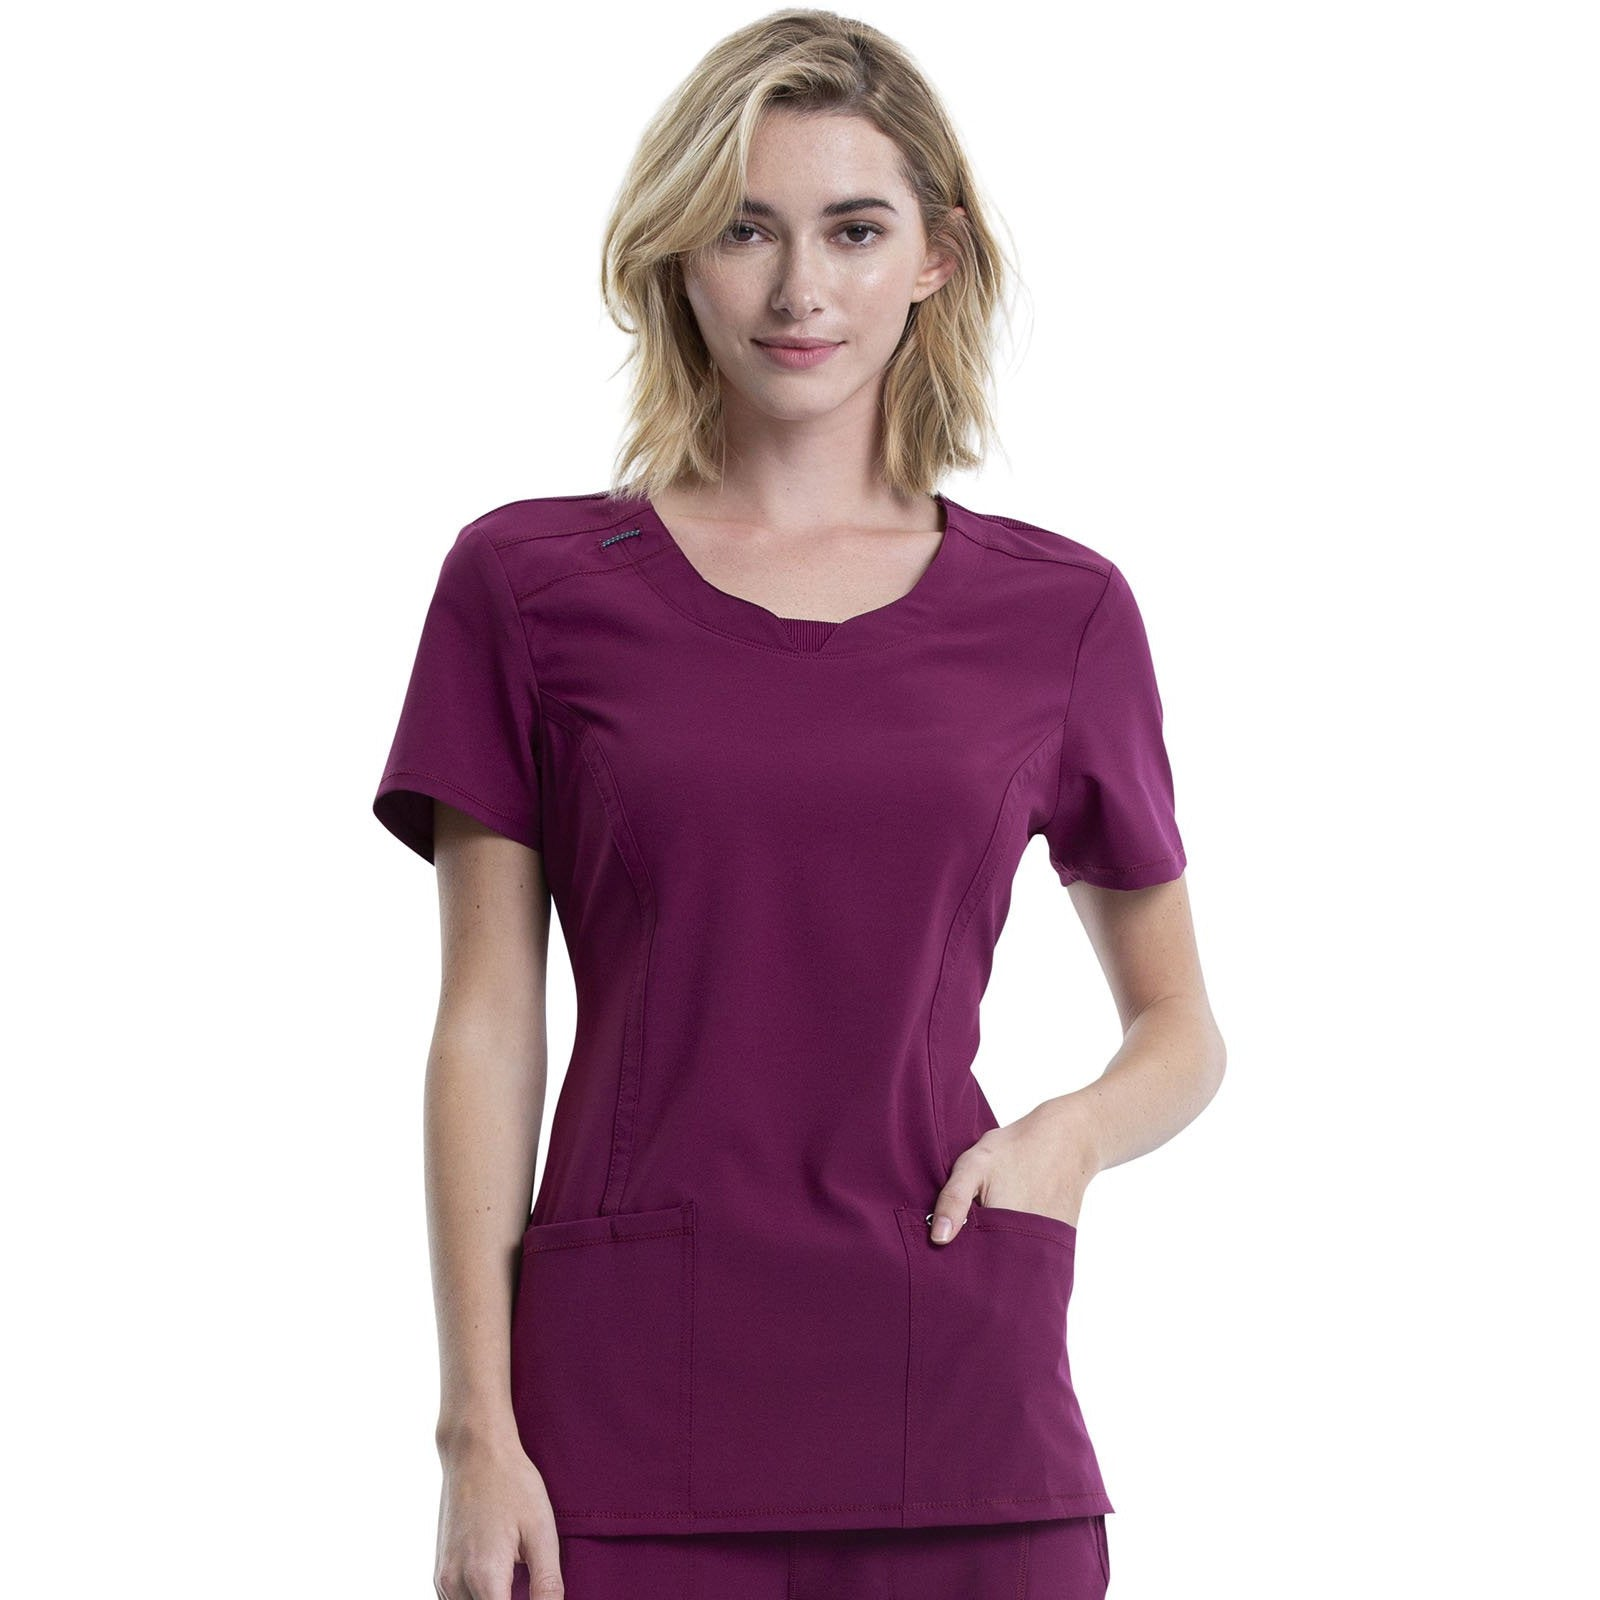 Infinity Round Neck Top 2624A (L-2XL)